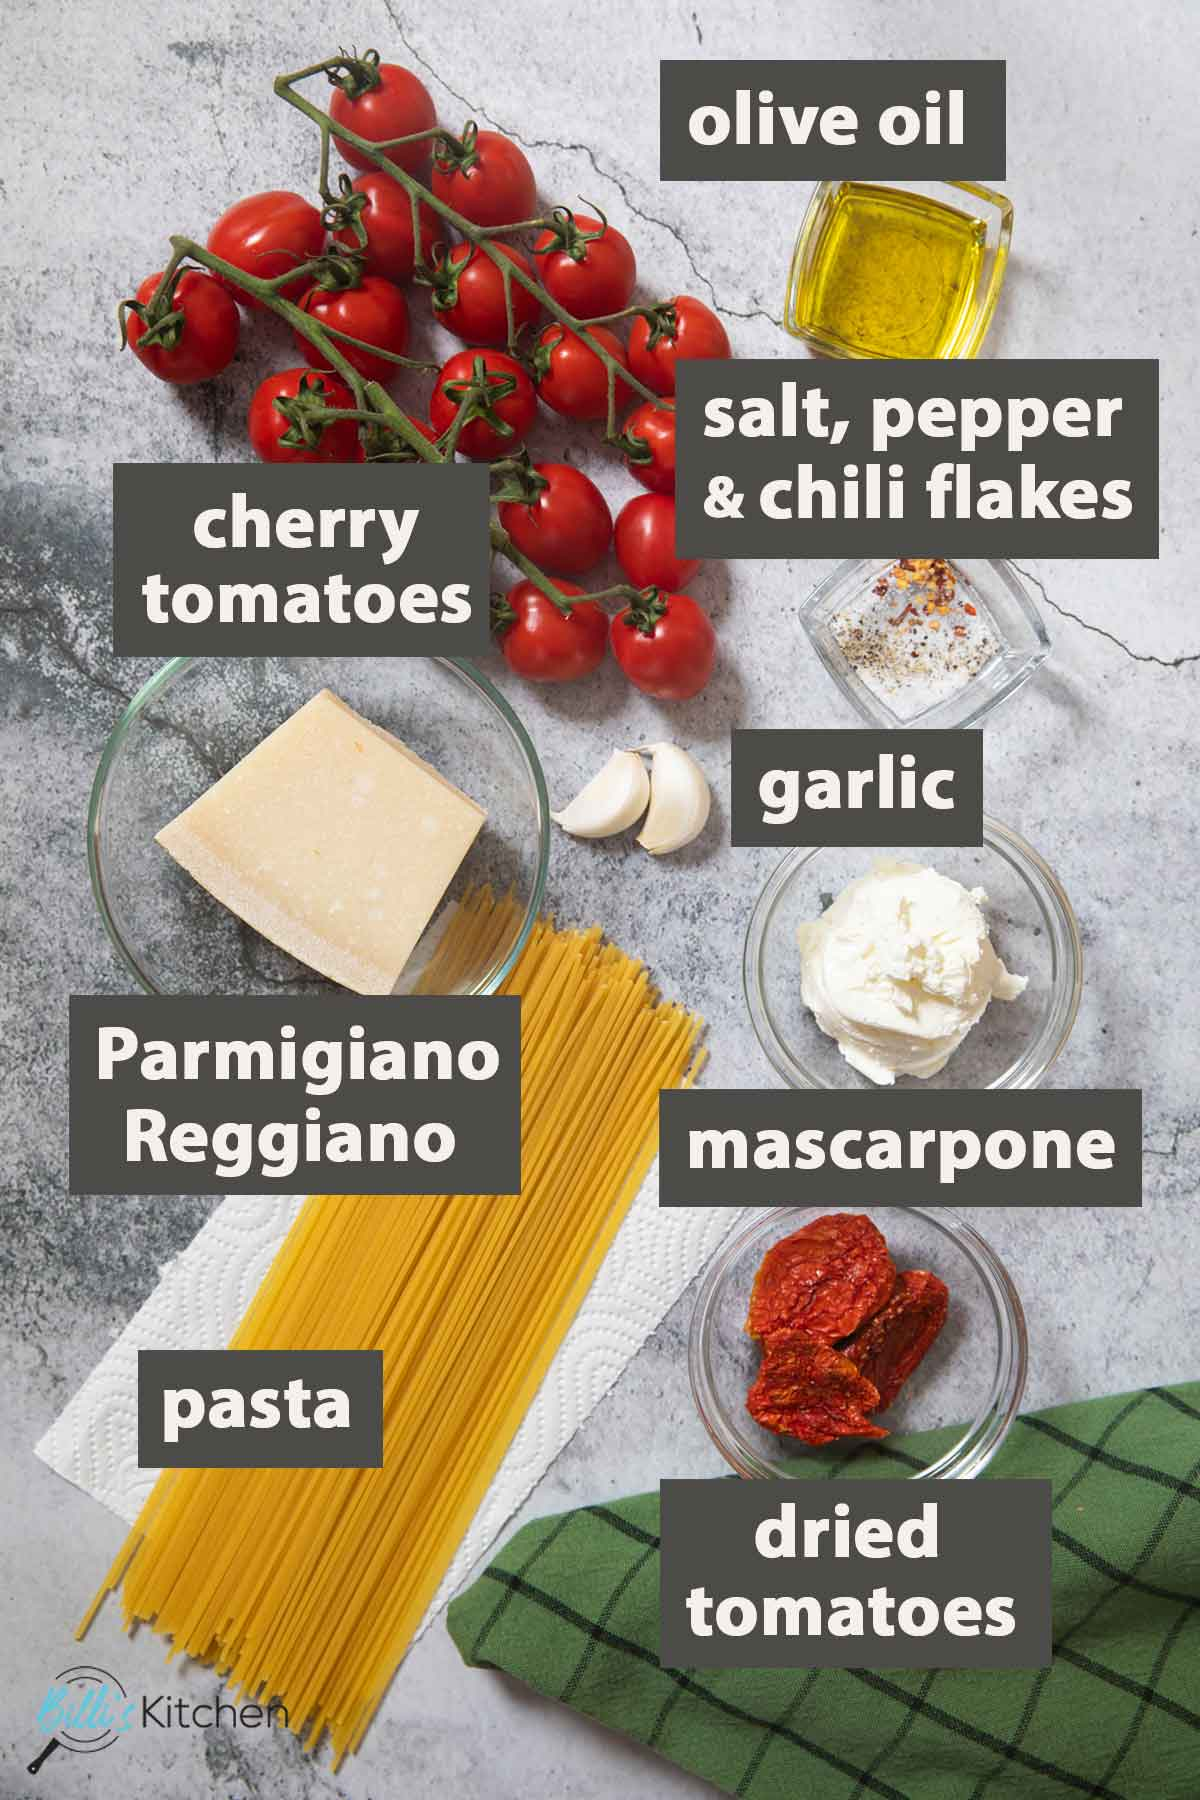 An image showing all the ingredients you need to prepare 15-Minute Tomato Mascarpone Pasta